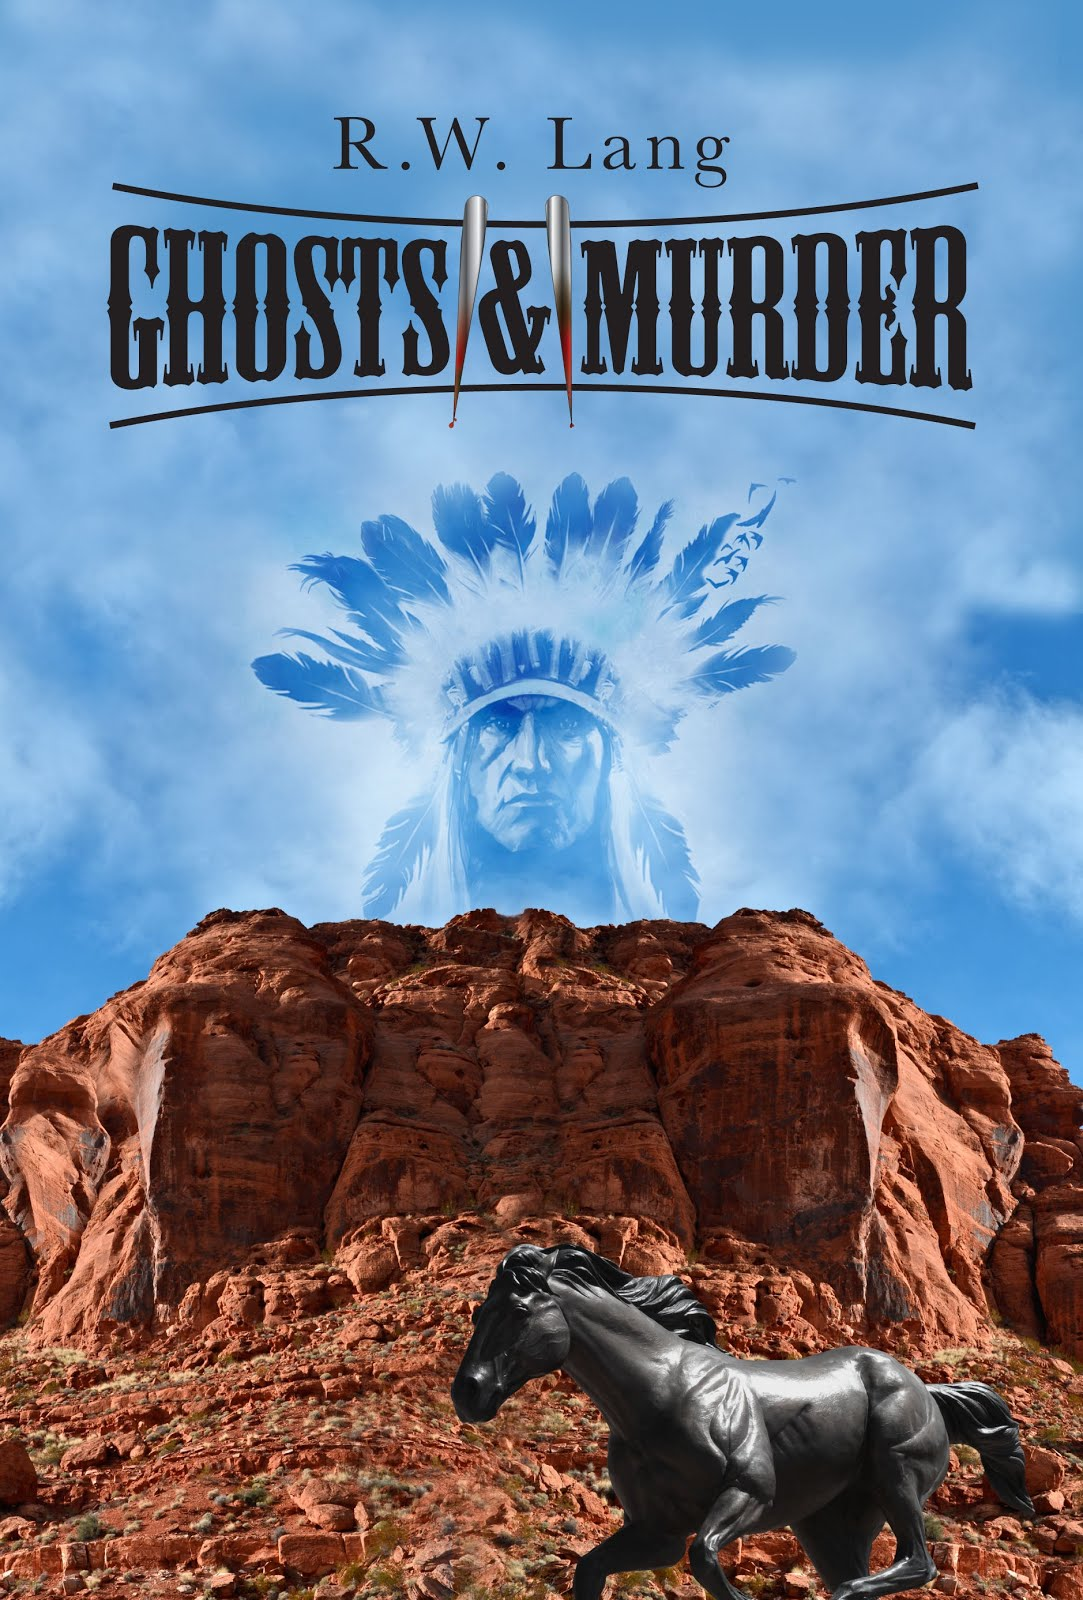 Ghosts & Murder by R.W. Lang